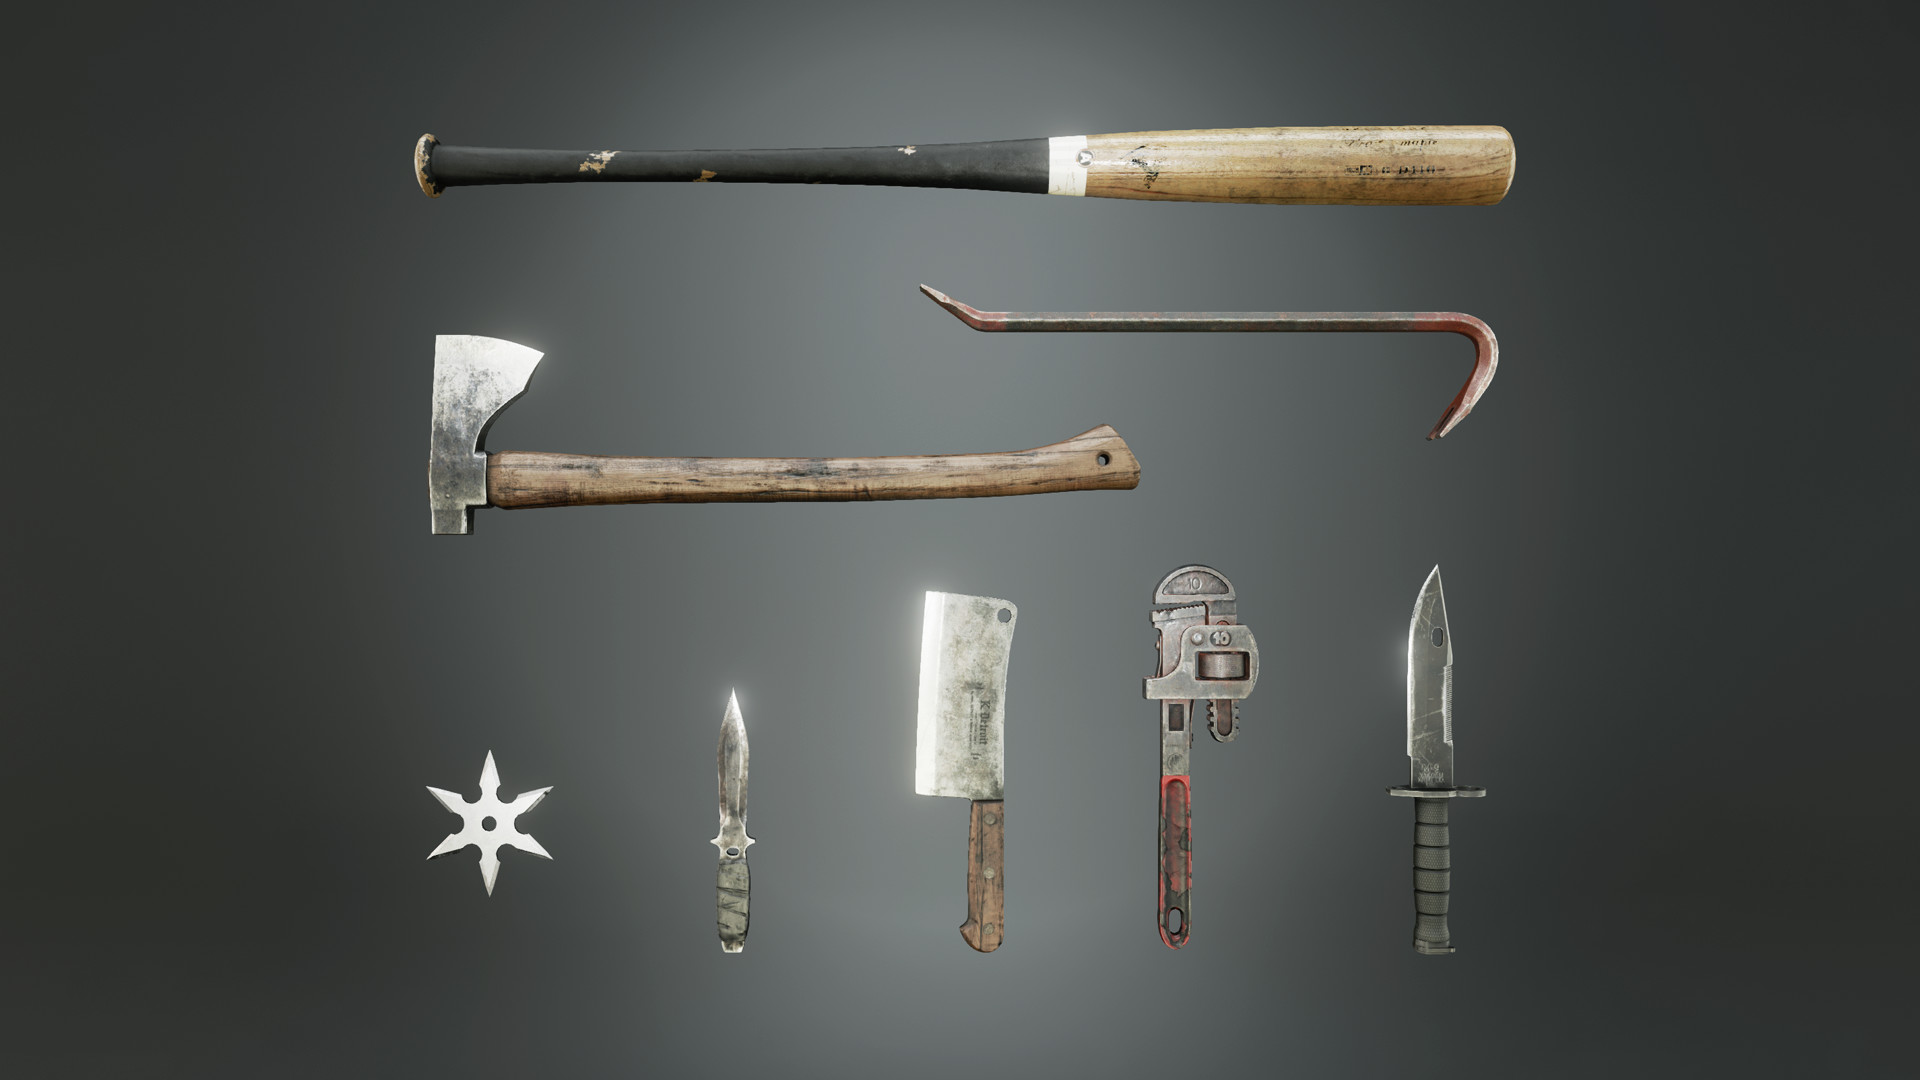 ArtStation - ☆ UE4 Marketplace - Melee Weapons Pack ☆, Stefan F